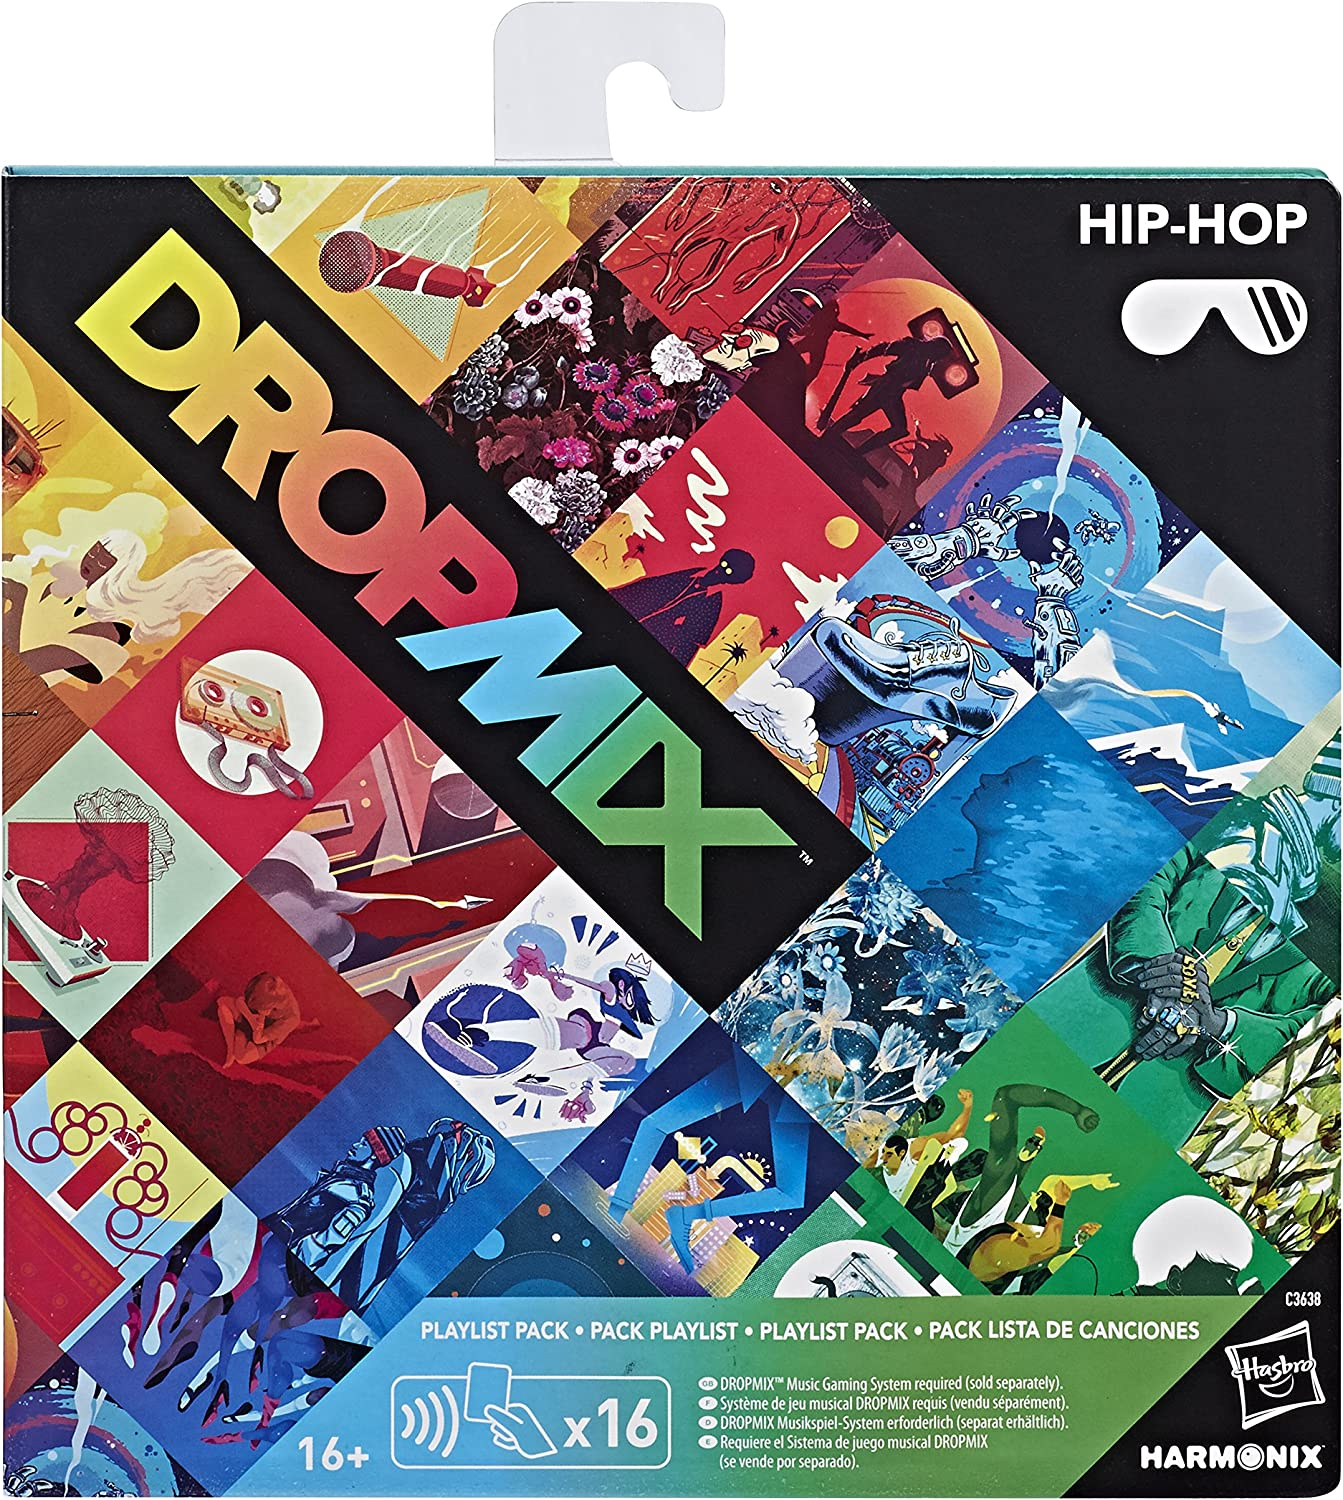 Mirrors DropMix Playlist Pack Hip-Hop